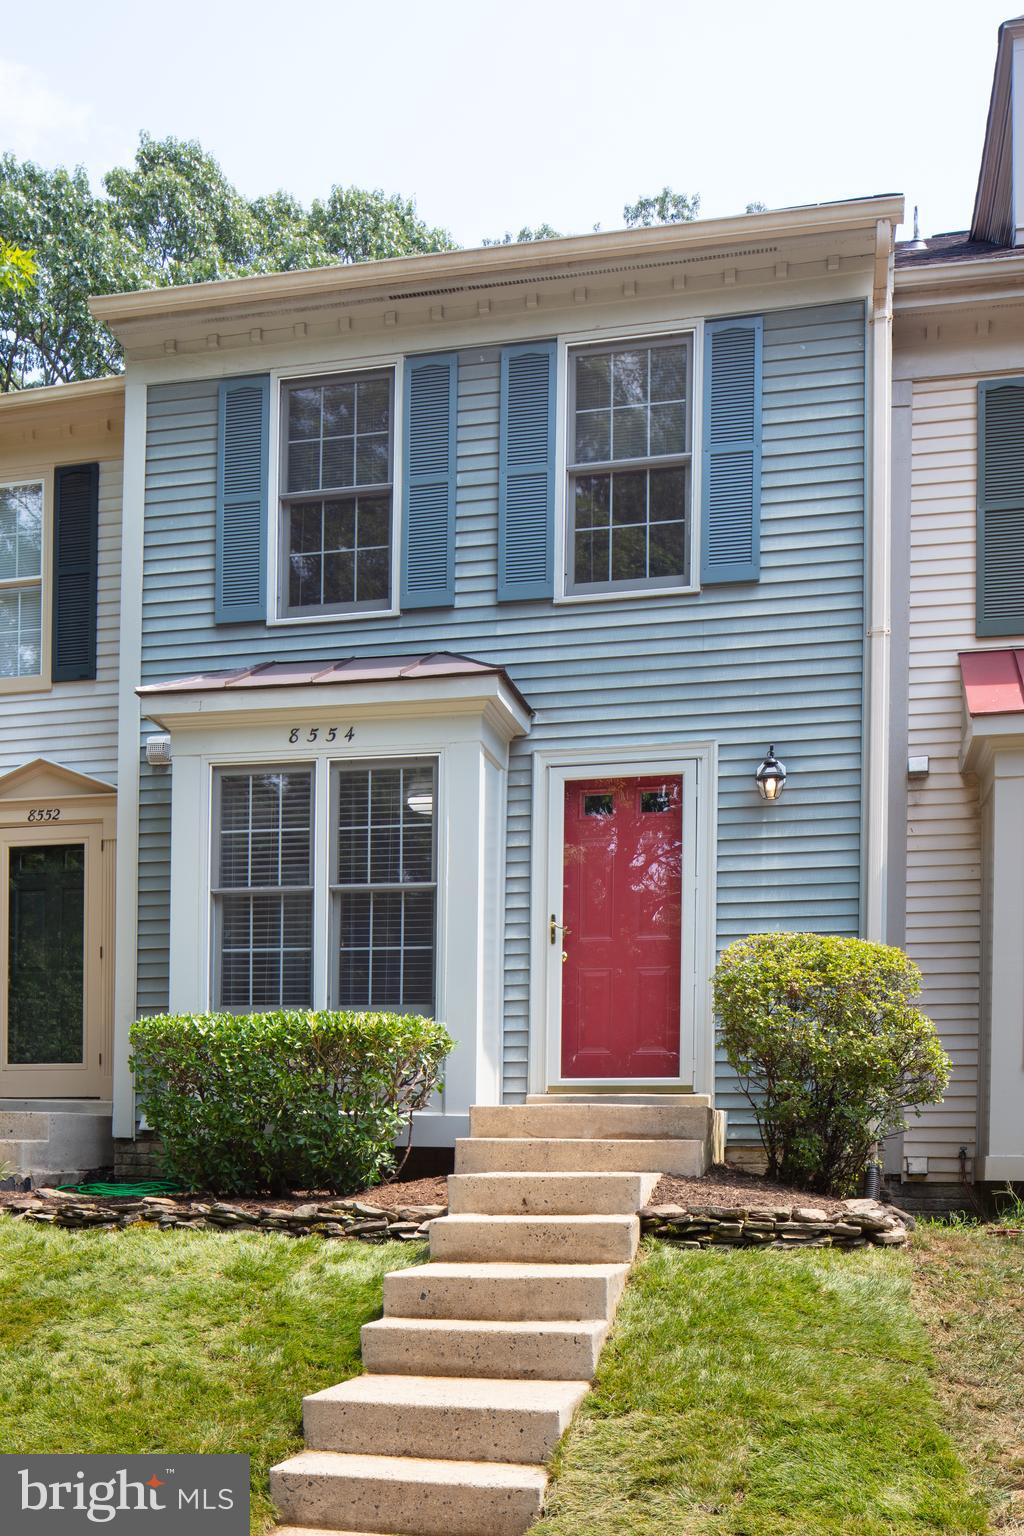 BACK ON THE MARKET WITH A BRAND NEW DECK!!!  Well Maintained 3 Level Townhouse * Bright and Clean * Move in Ready! * Backs to Trees * Cul de Sac Location * New Hardwoods on Main Level * New Carpet on Upper & Lower Levels * New Paint * New Granite in Kitchen * 2 Bedrooms & 2 Full Baths on Upper Lvl * Kitchen w/ Small Table Space & Lots of Cabinets * Living Room/Dining Room Combo * Deck Off Living Room * Very Nice Lower Level Family Room * Under The Stair Storage Plus Large Utility Room * Family Room Walk Out to Patio & Fully Fenced Back Yard * Super Commuter Location - Easy access to I-95, Fairfax County Parkway, Metro, VRE and Ft Belvoir.